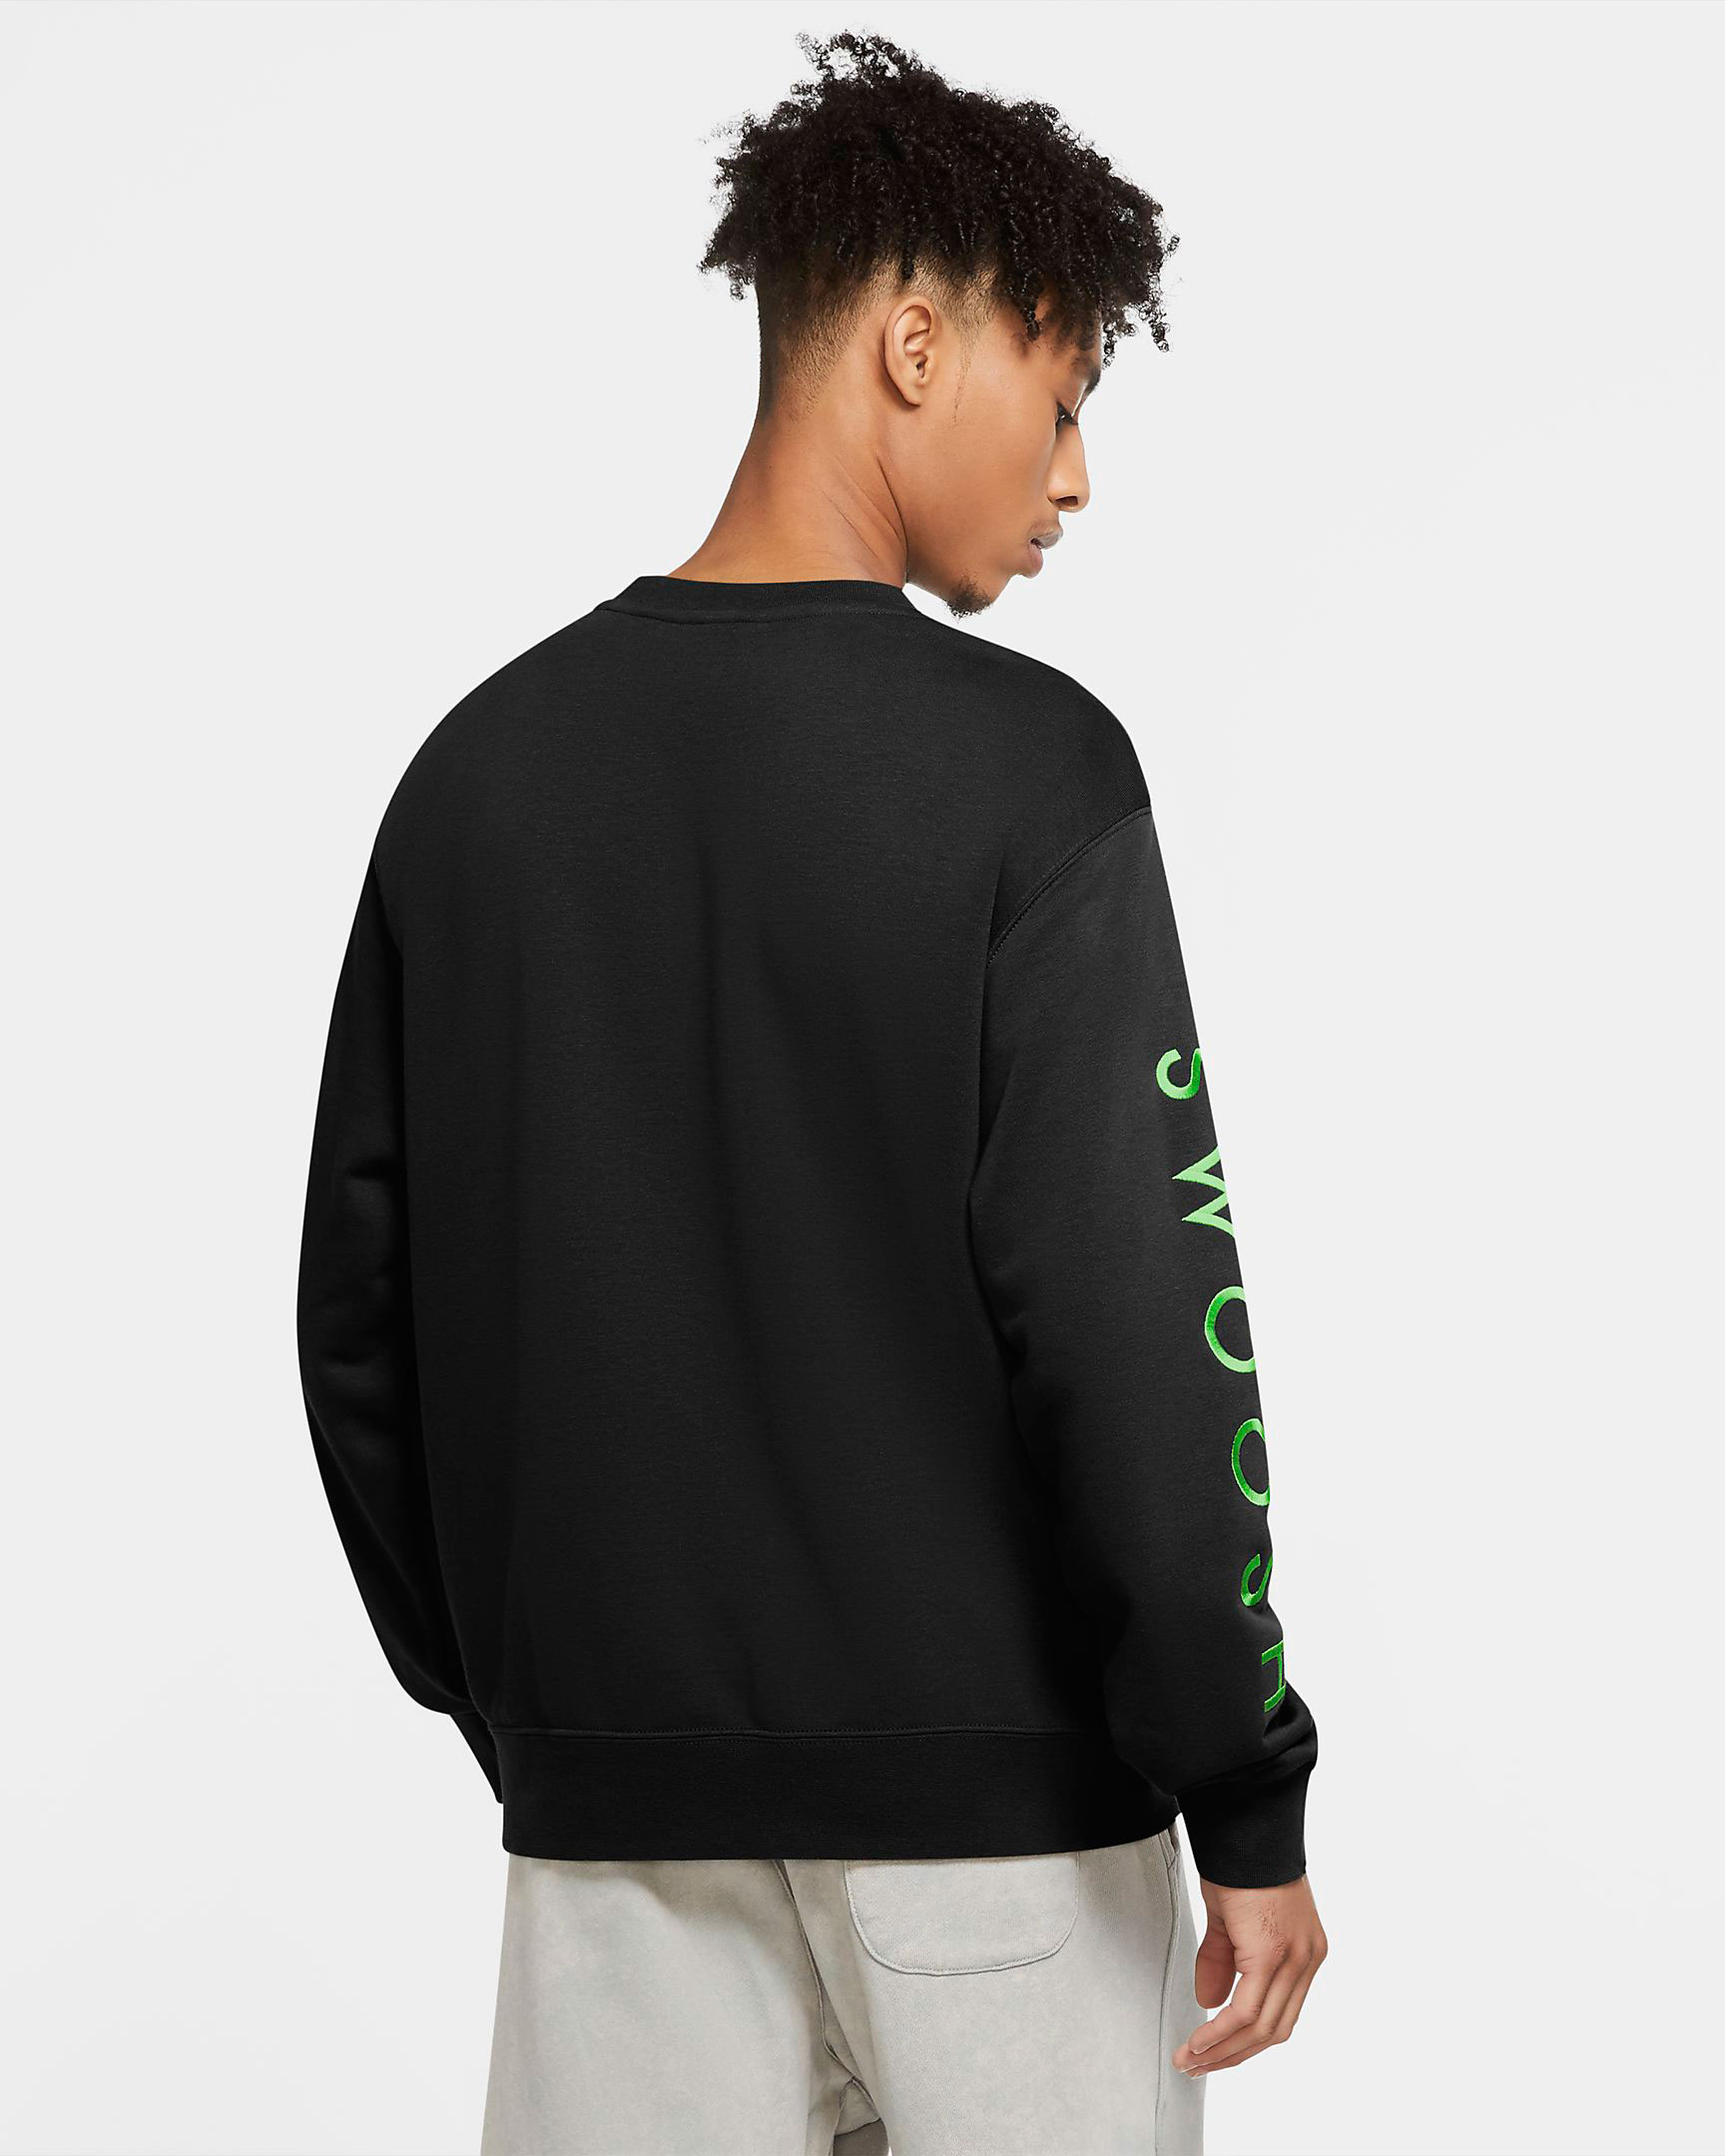 nike-worldwide-sweatshirt-black-green-2